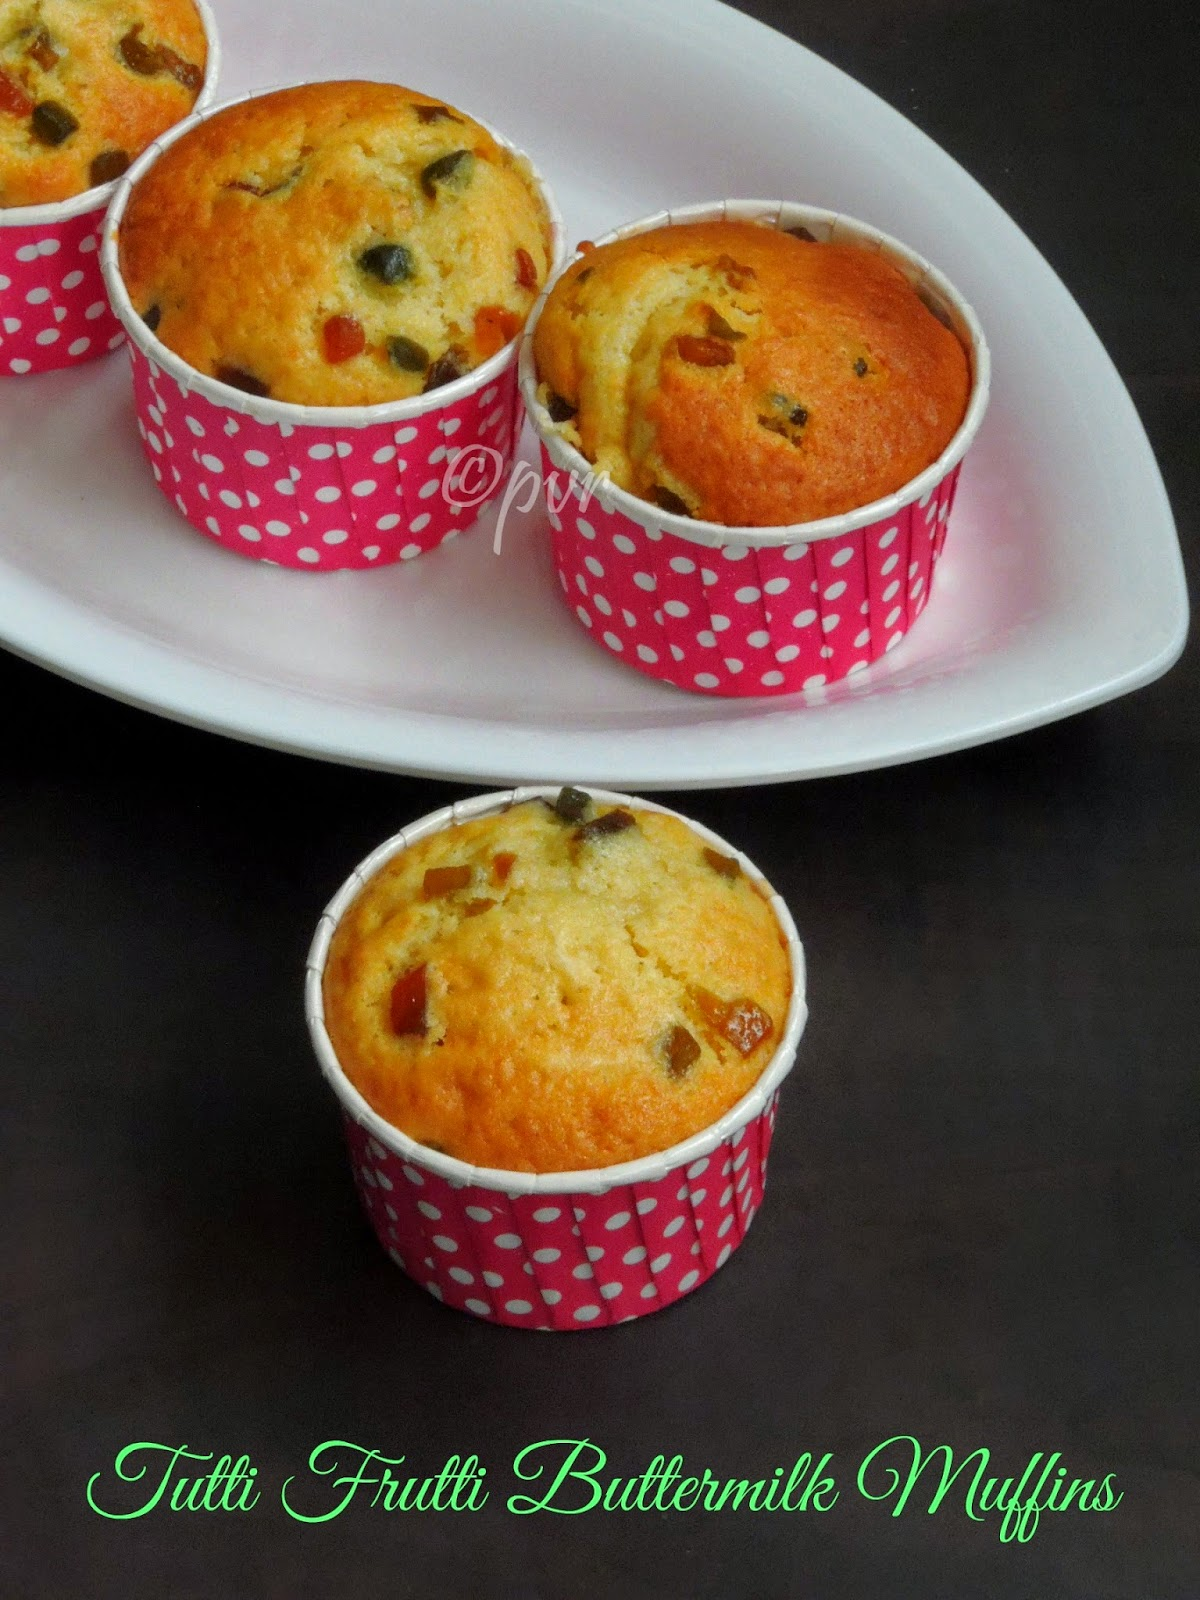 Buttermilk Muffins with Tutti Frutti